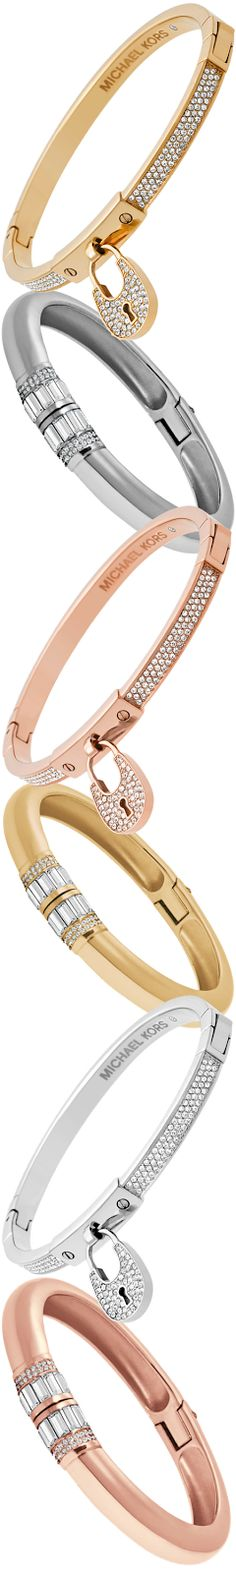 Michael Kors Assorted Bangles | LOLO      ᘡղbᘠ